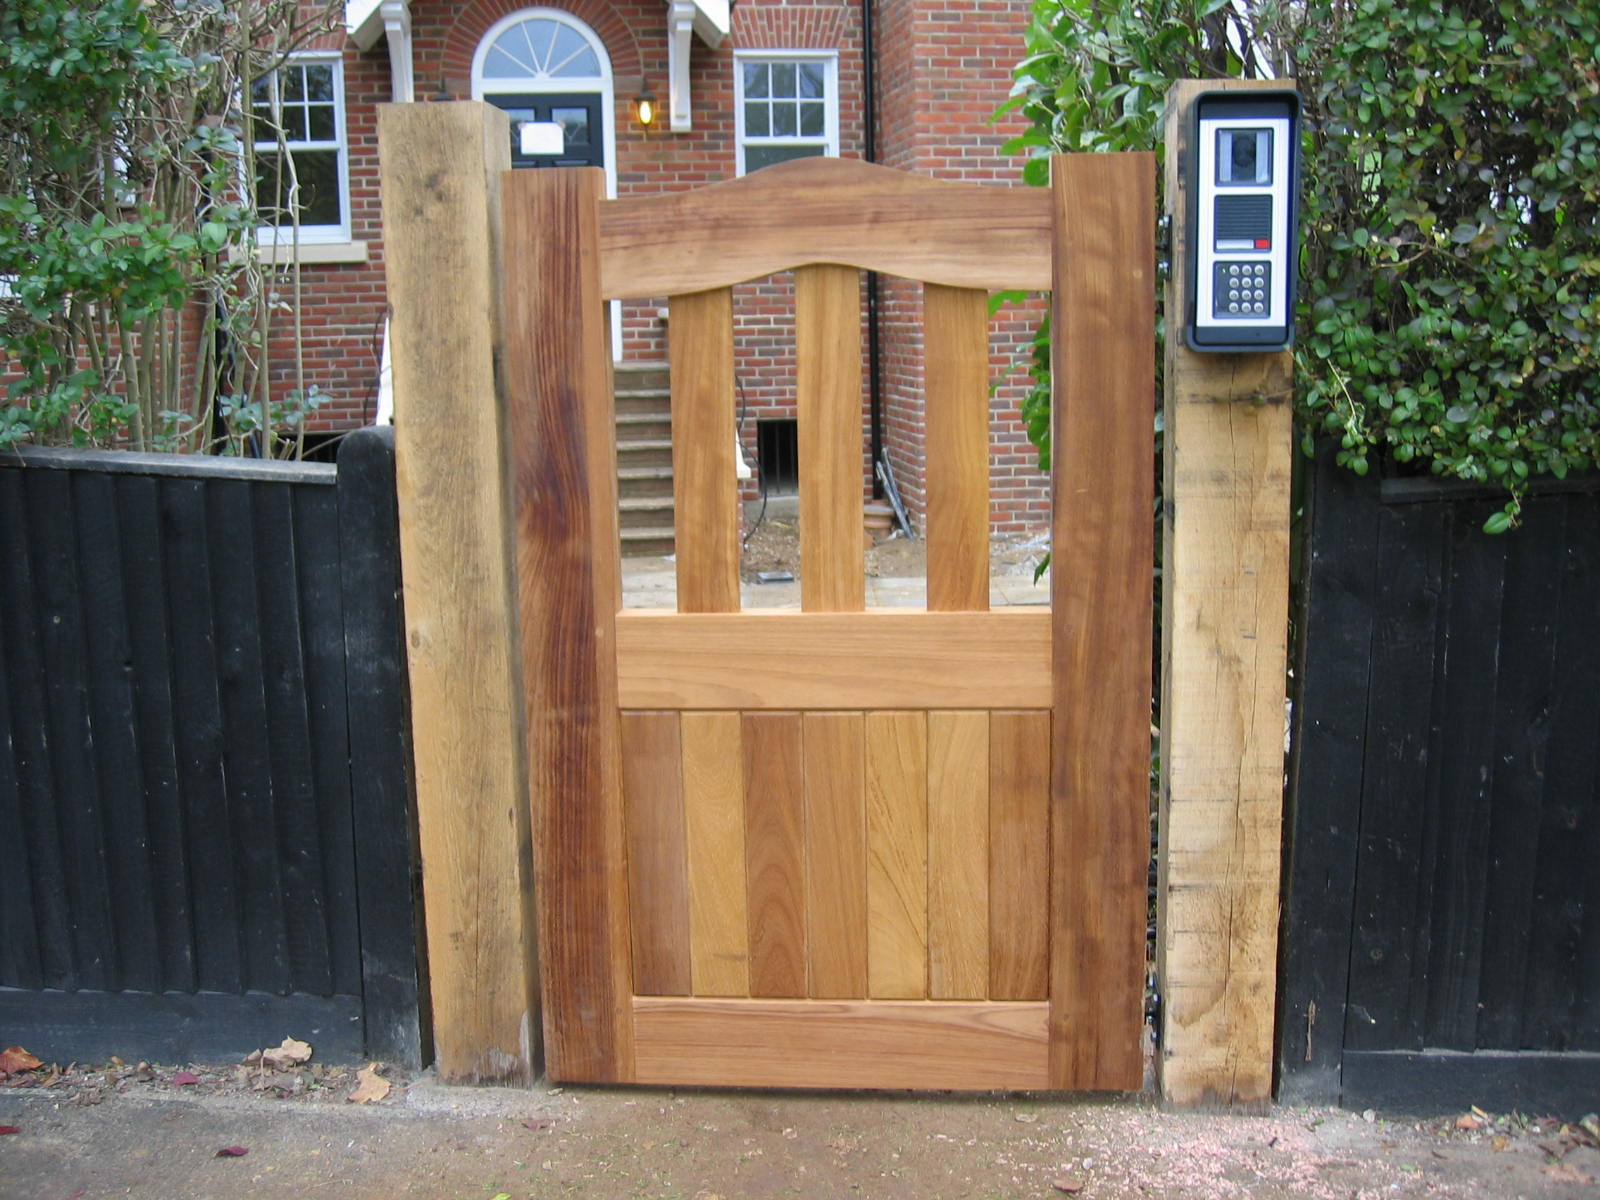 Exclusive idea small gate garden furniture wood wilson for Garden gate designs wood